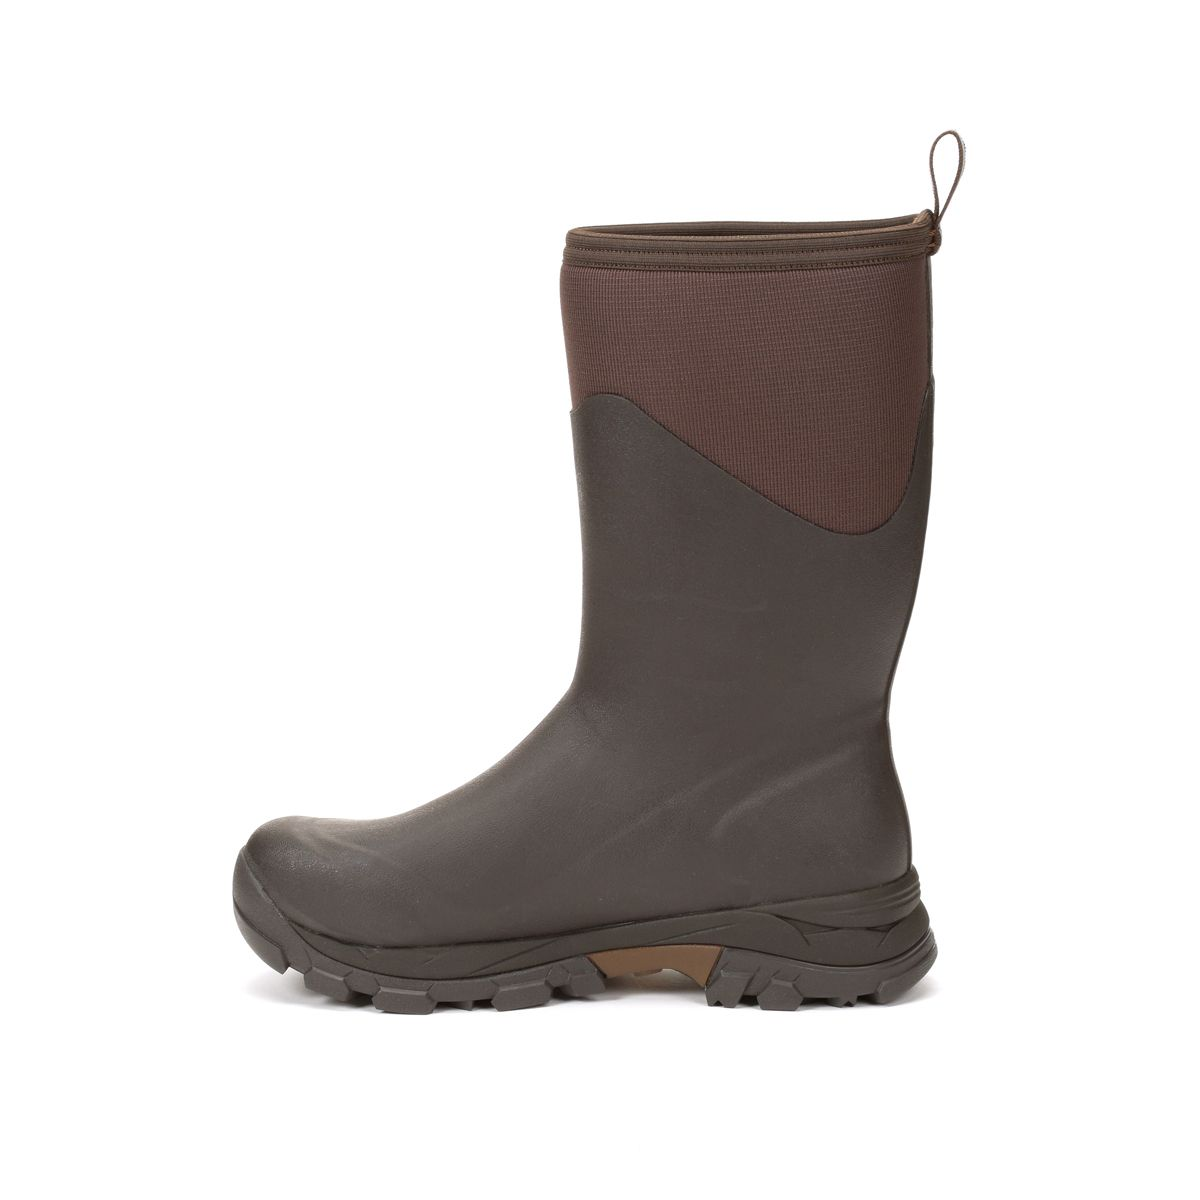 Bottes isolées Artic Ice Mid